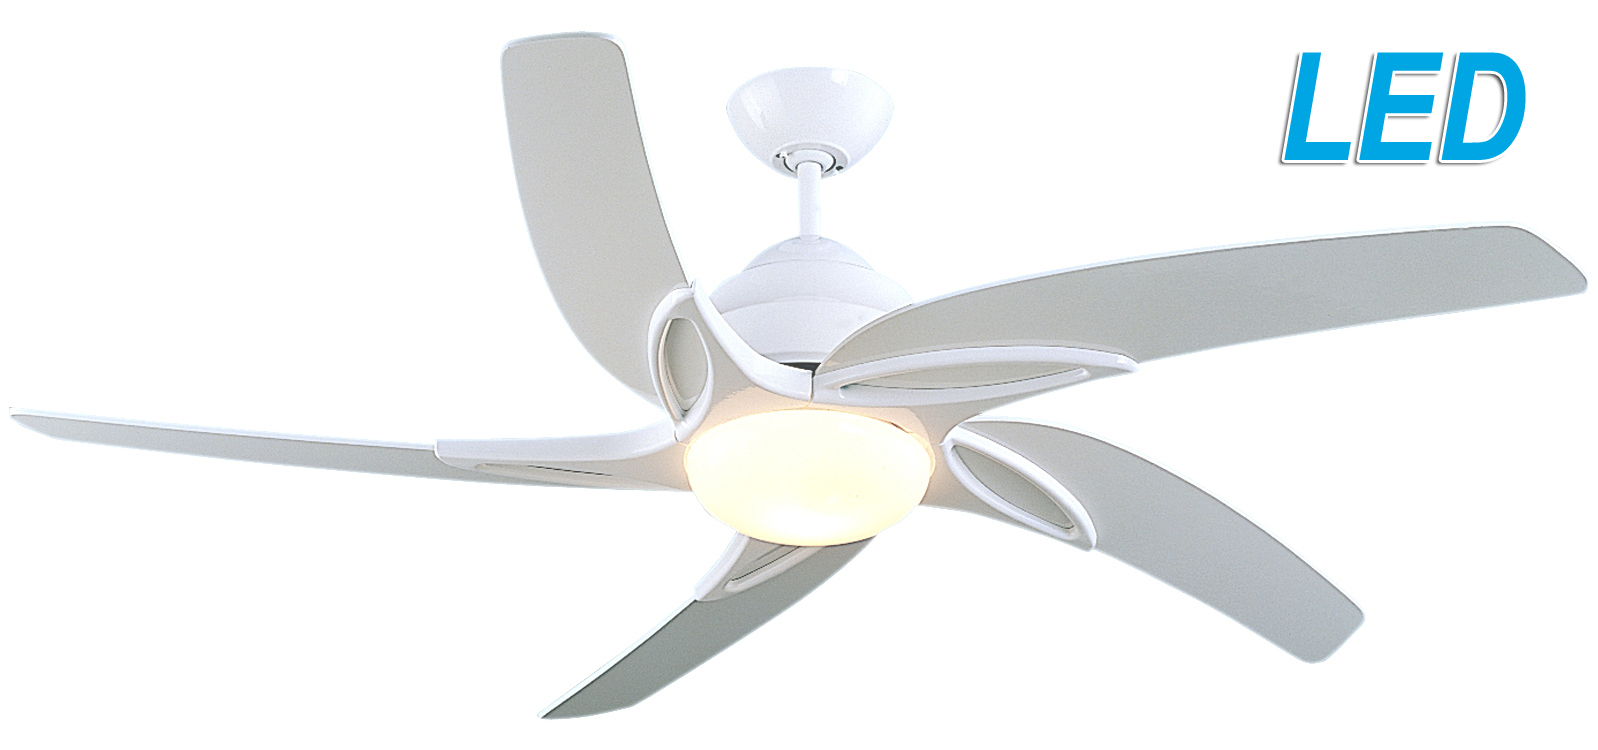 Fantasia viper 54 white ceiling fan remote control led light 115663 fantasia viper 54 white ceiling fan remote control led light 115663 mozeypictures Gallery